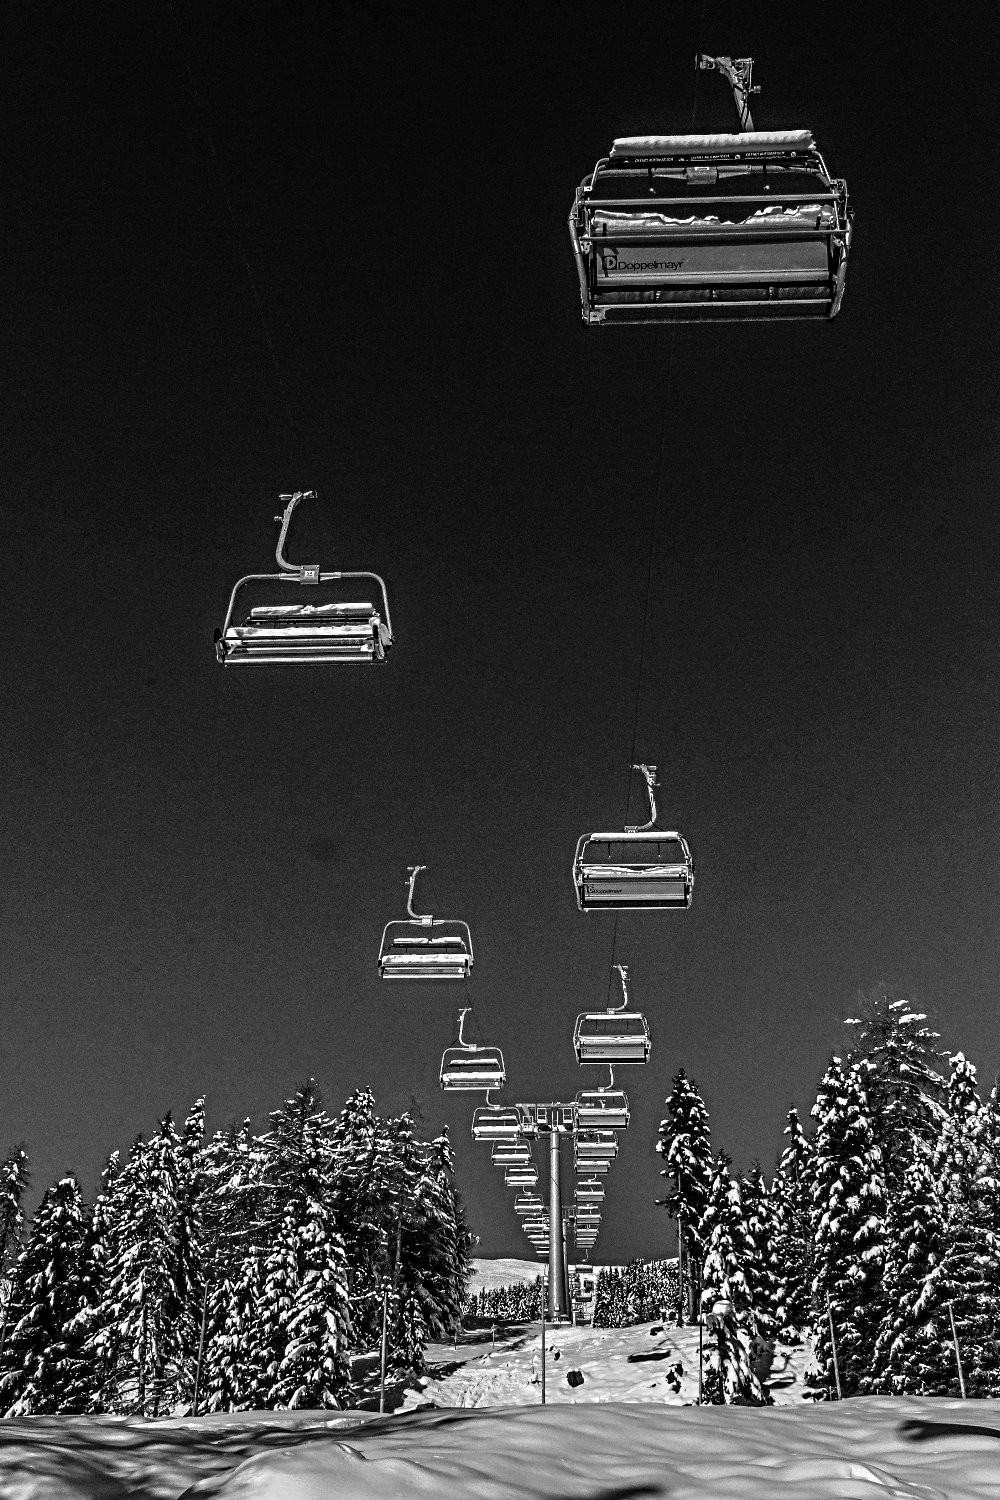 Ski Lifts in Black and White